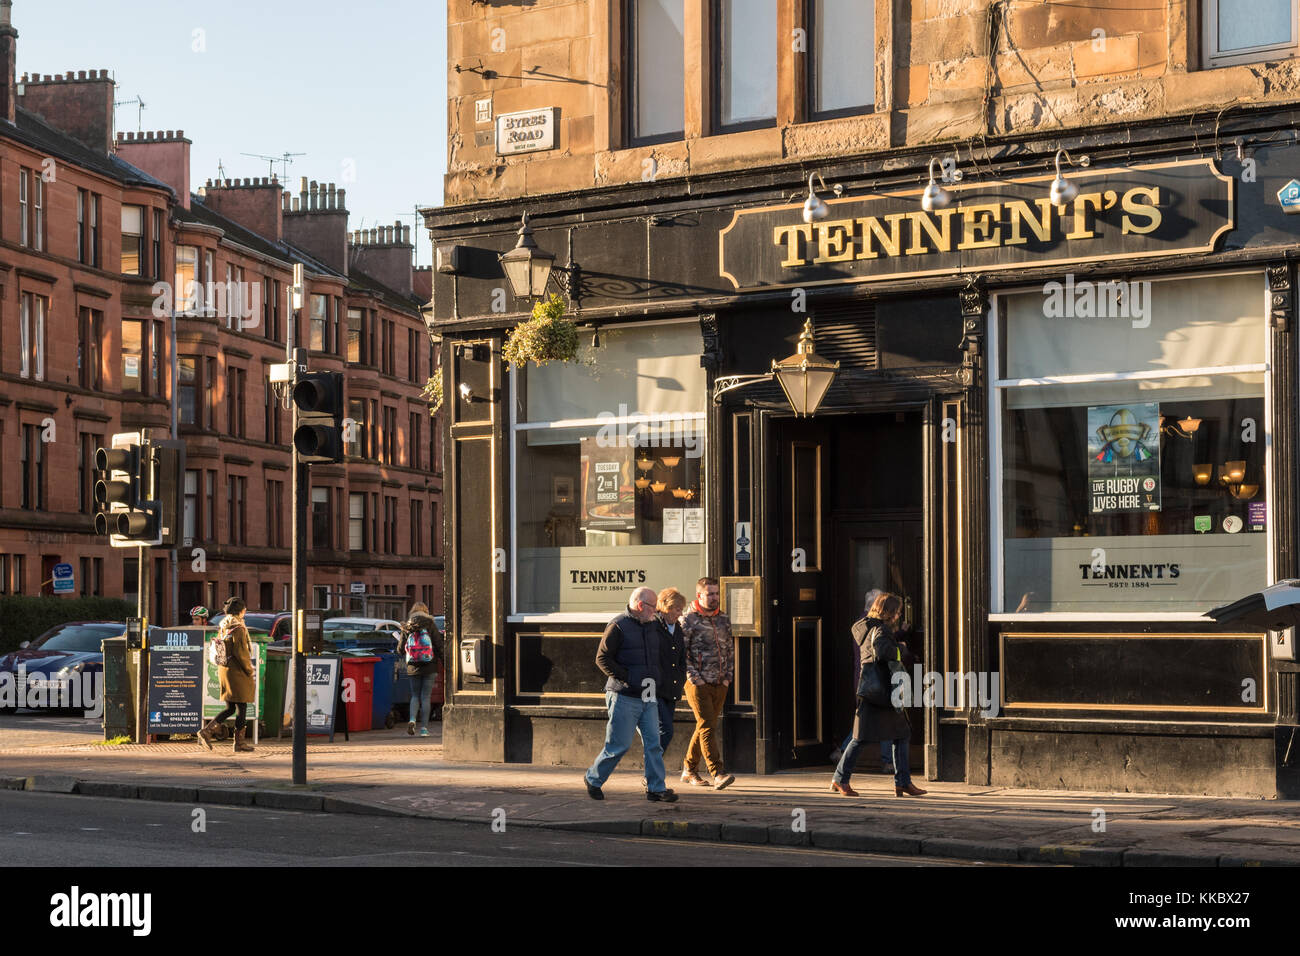 Tennent's Bar Pub, Byres Road, Glasgow, Scotland, UK - Stock Image